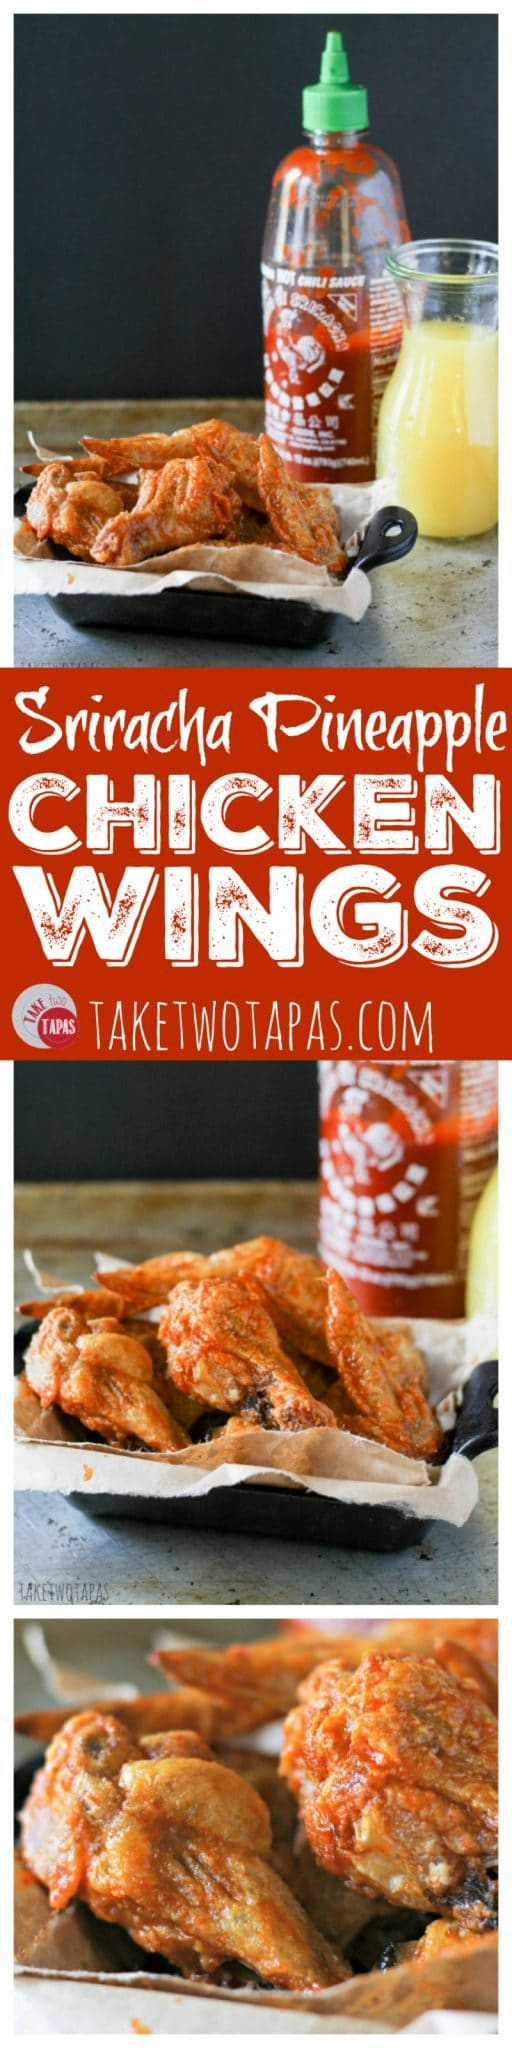 Sriracha Pineapple Chicken Wing Recipe | Take Two Tapas | #Sriracha #Pineapple #ChickenWings #chicken #tailgate #MarchMadness